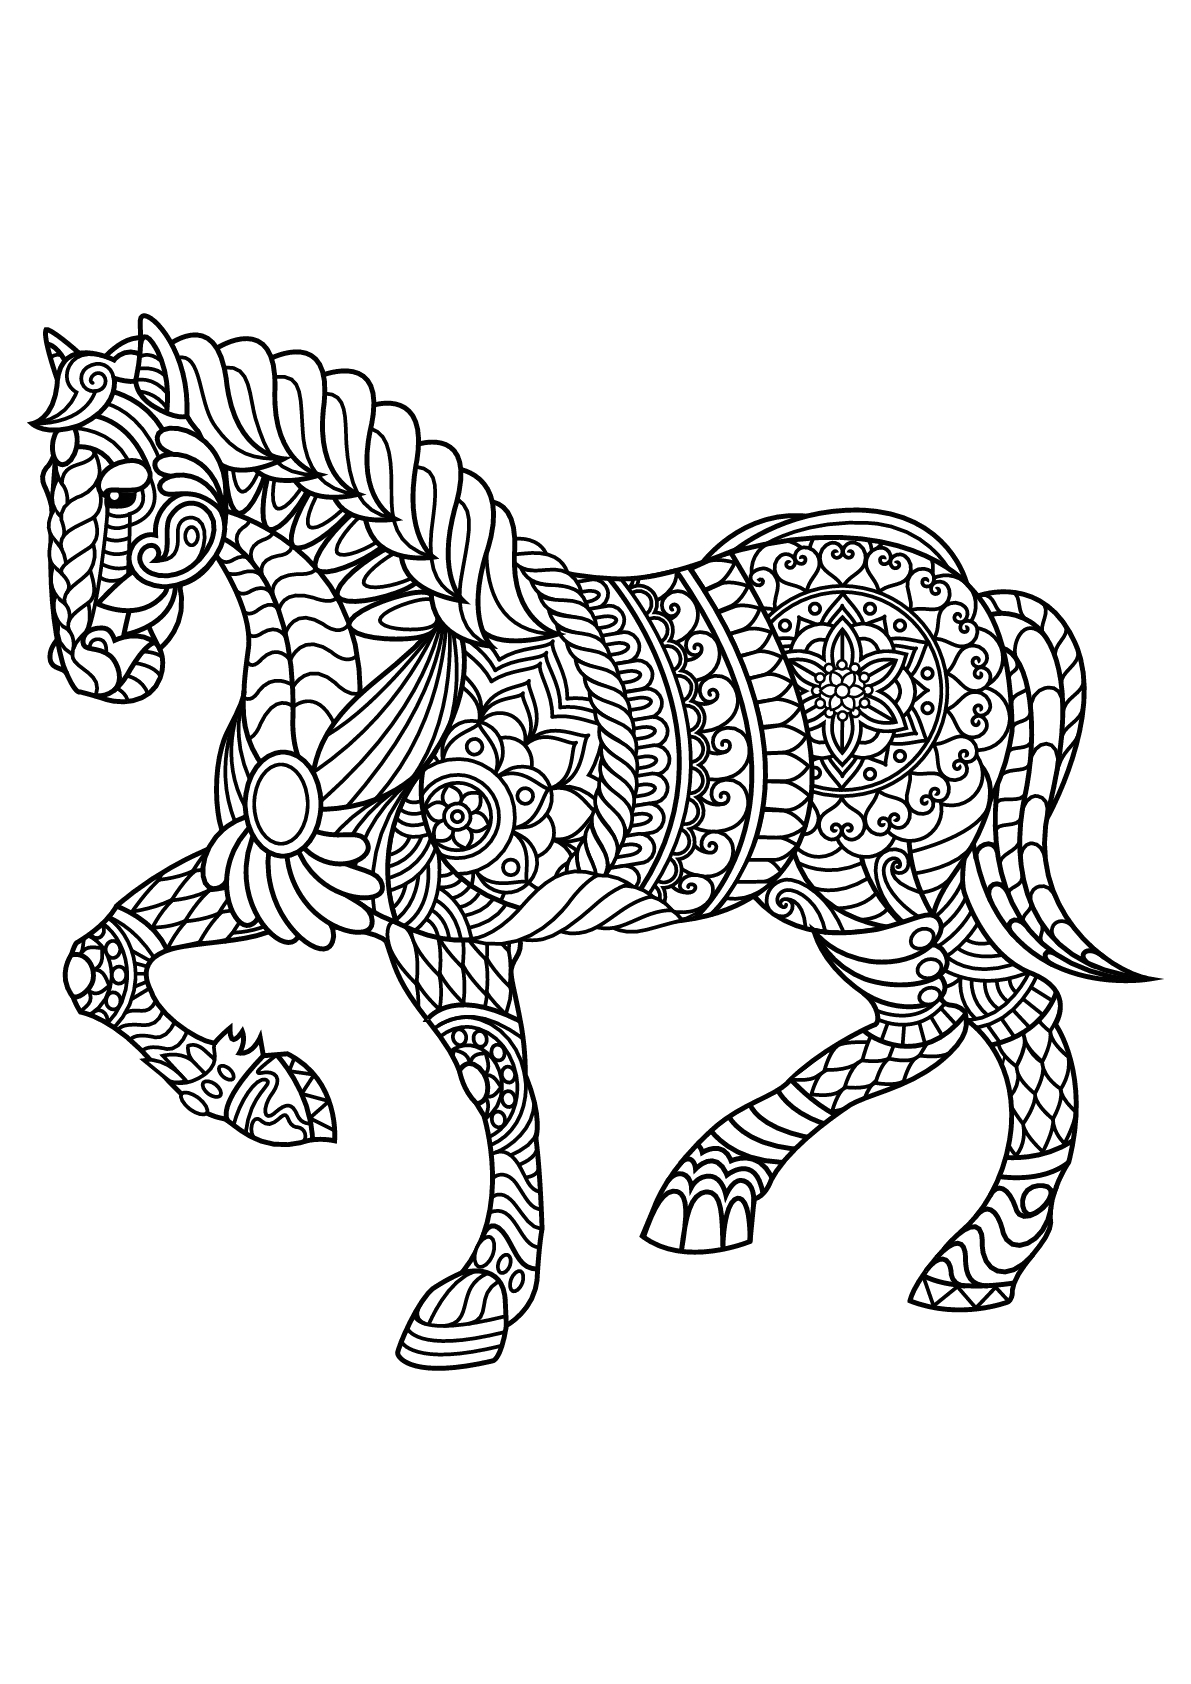 Horse Coloring Pages for Adults to Print Free Book Horse Horses Adult Coloring Pages